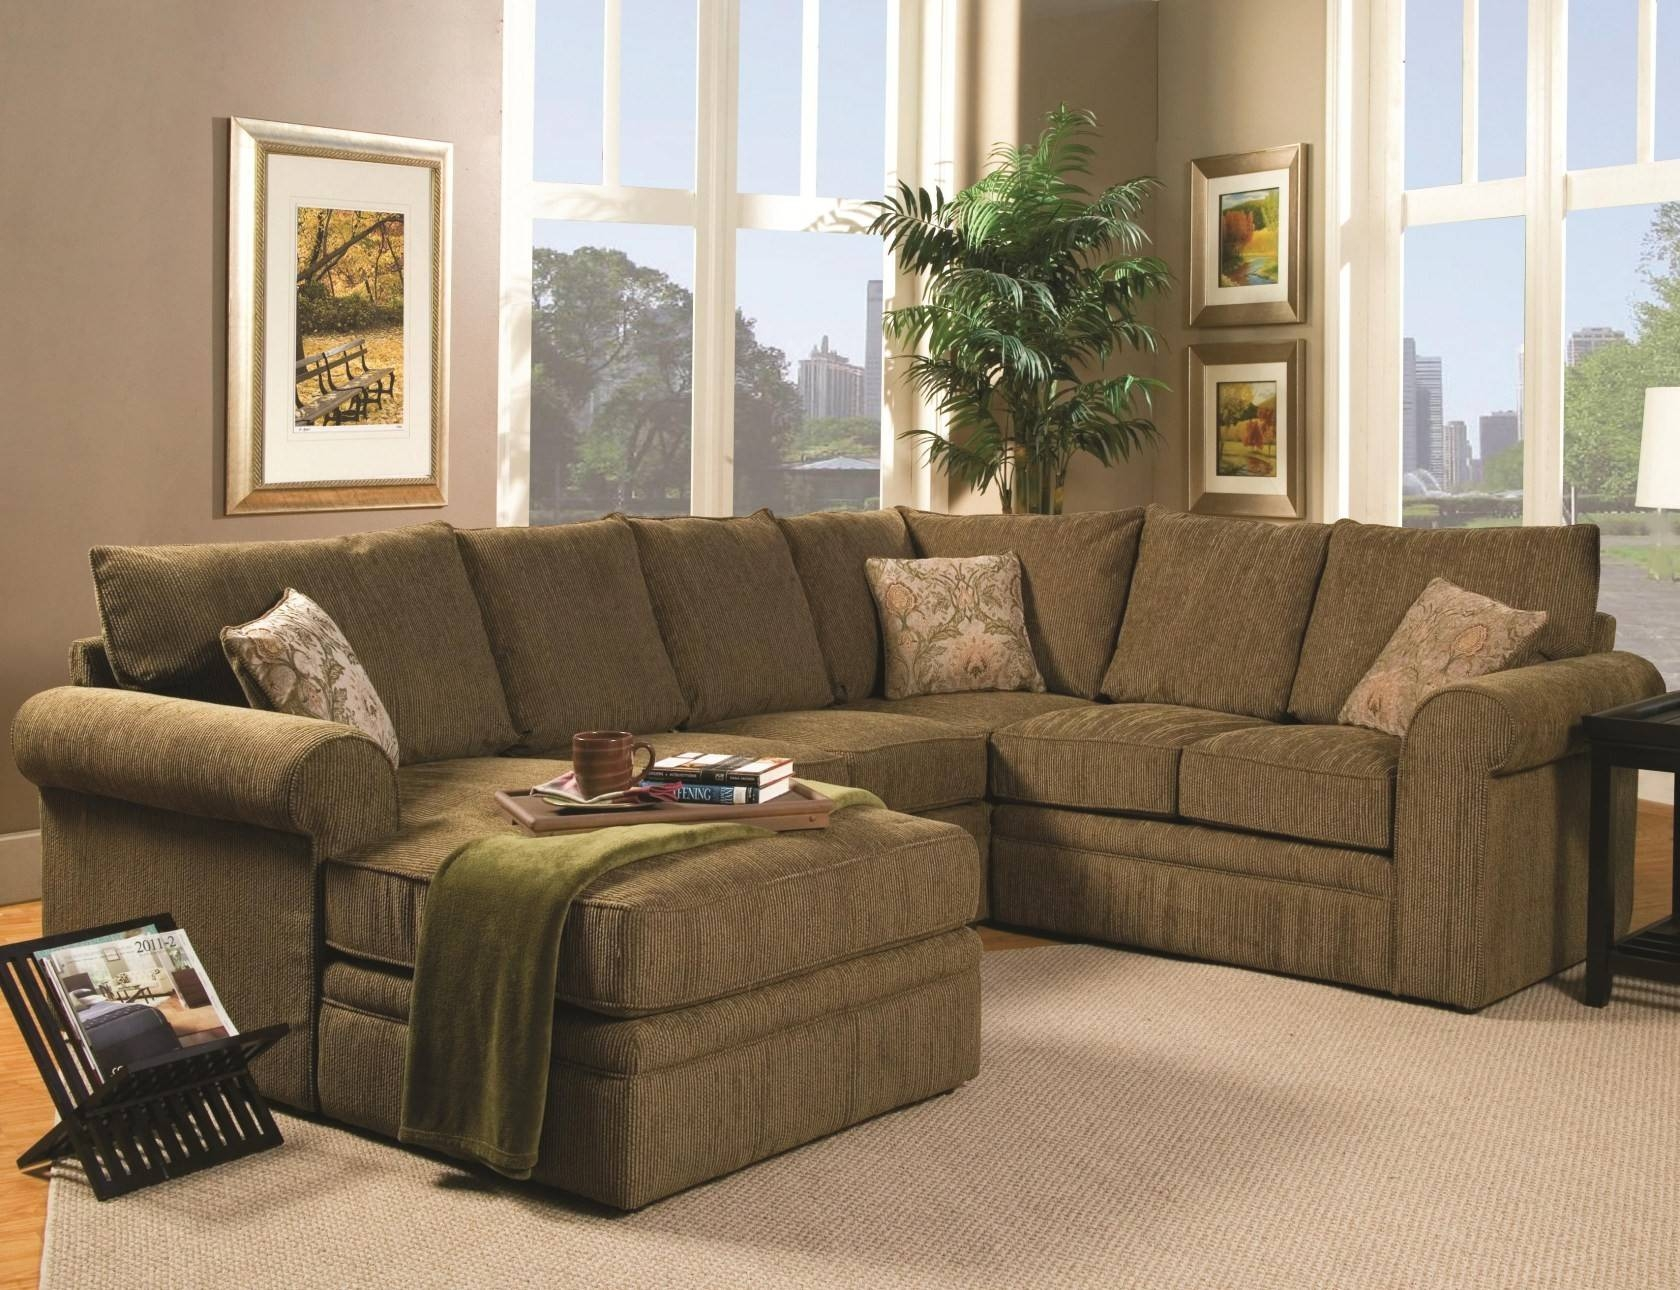 Modern-Sectional-Sofas - S3Net - Sectional Sofas Sale : S3Net regarding Chenille and Leather Sectional Sofa (Image 24 of 30)